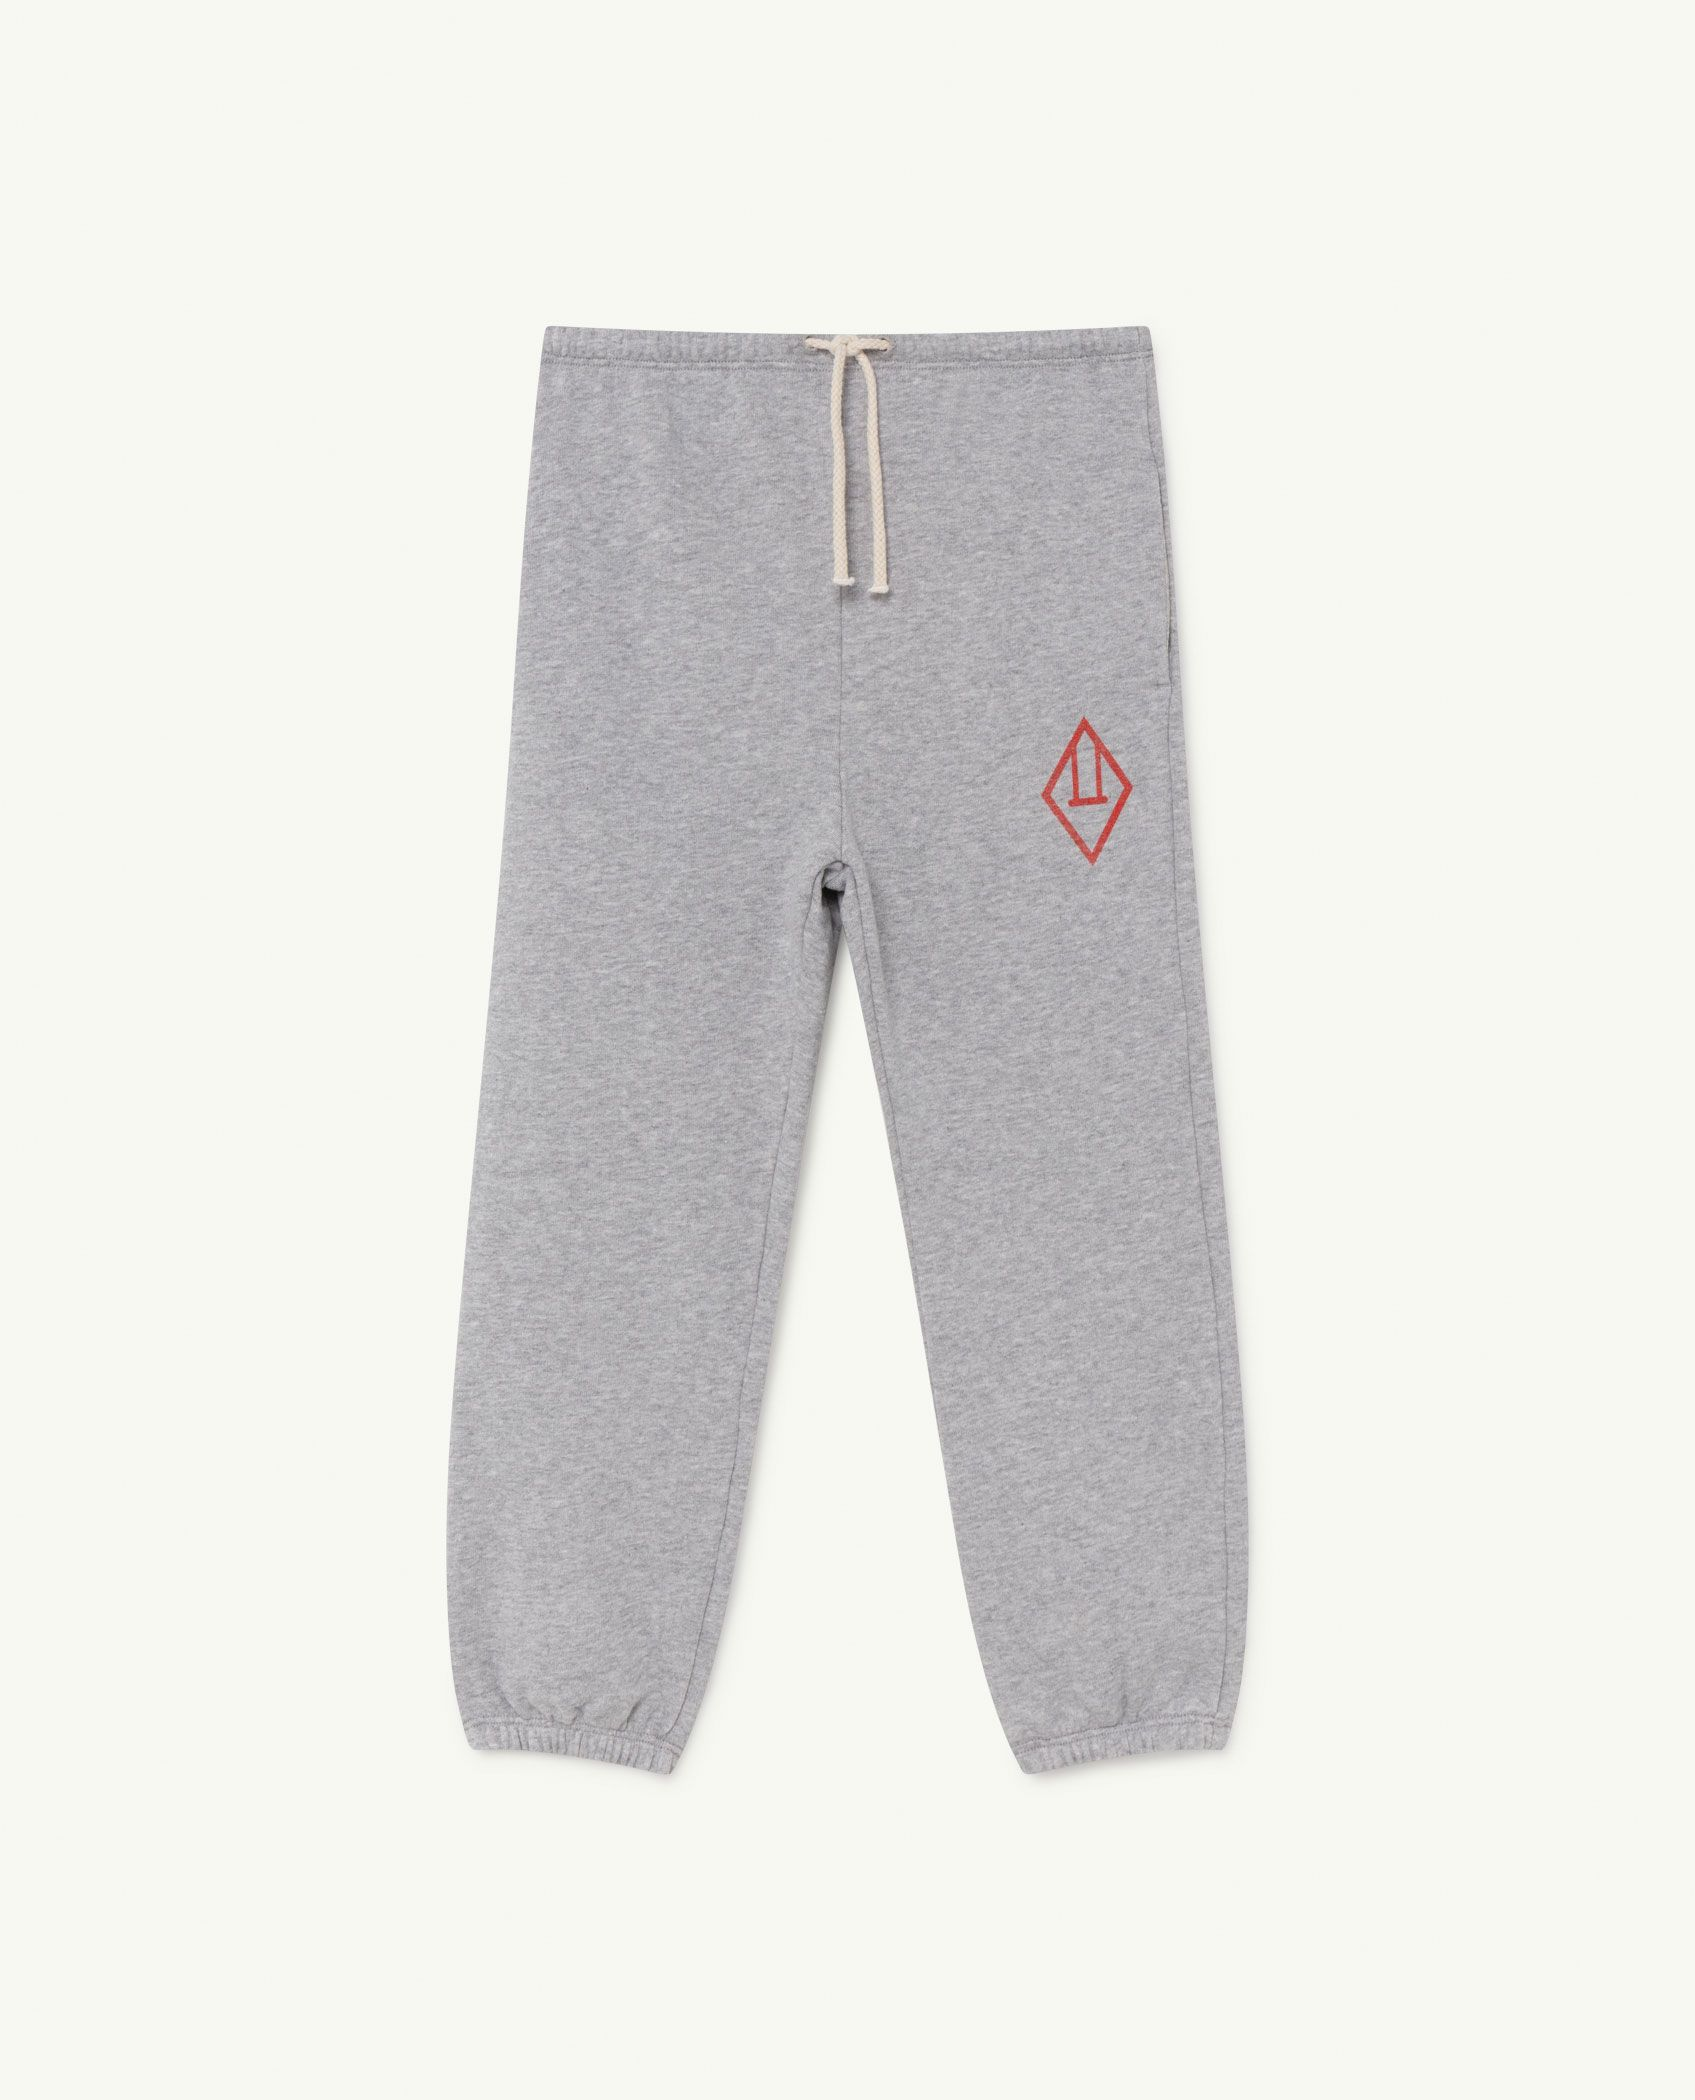 Grey Logo Dromedary Trousers img-1